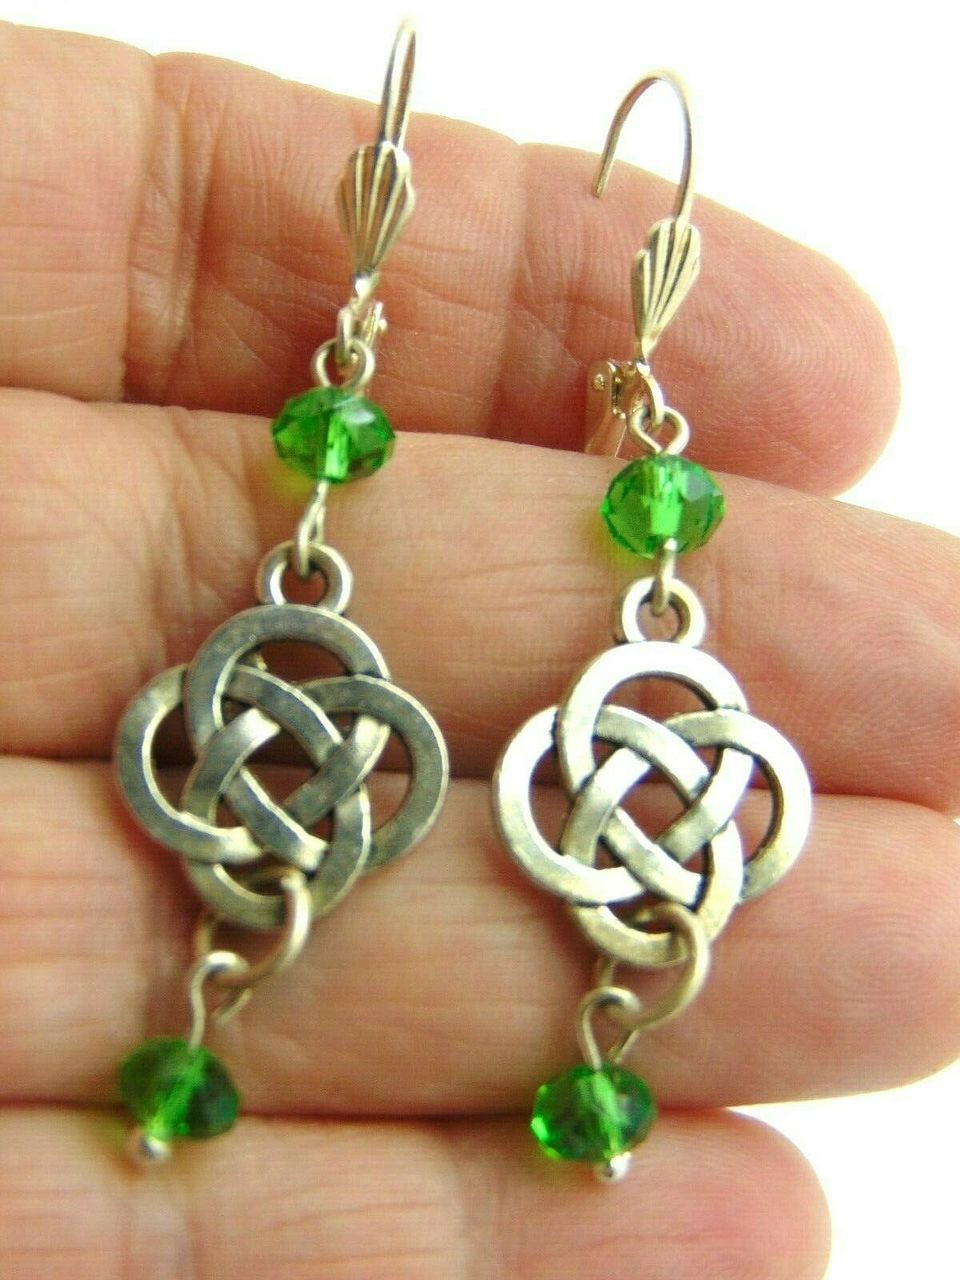 5a409c750 Silver Celtic Knot Earrings Irish Made w Swarovski Crystal Peridot  DazzleCity